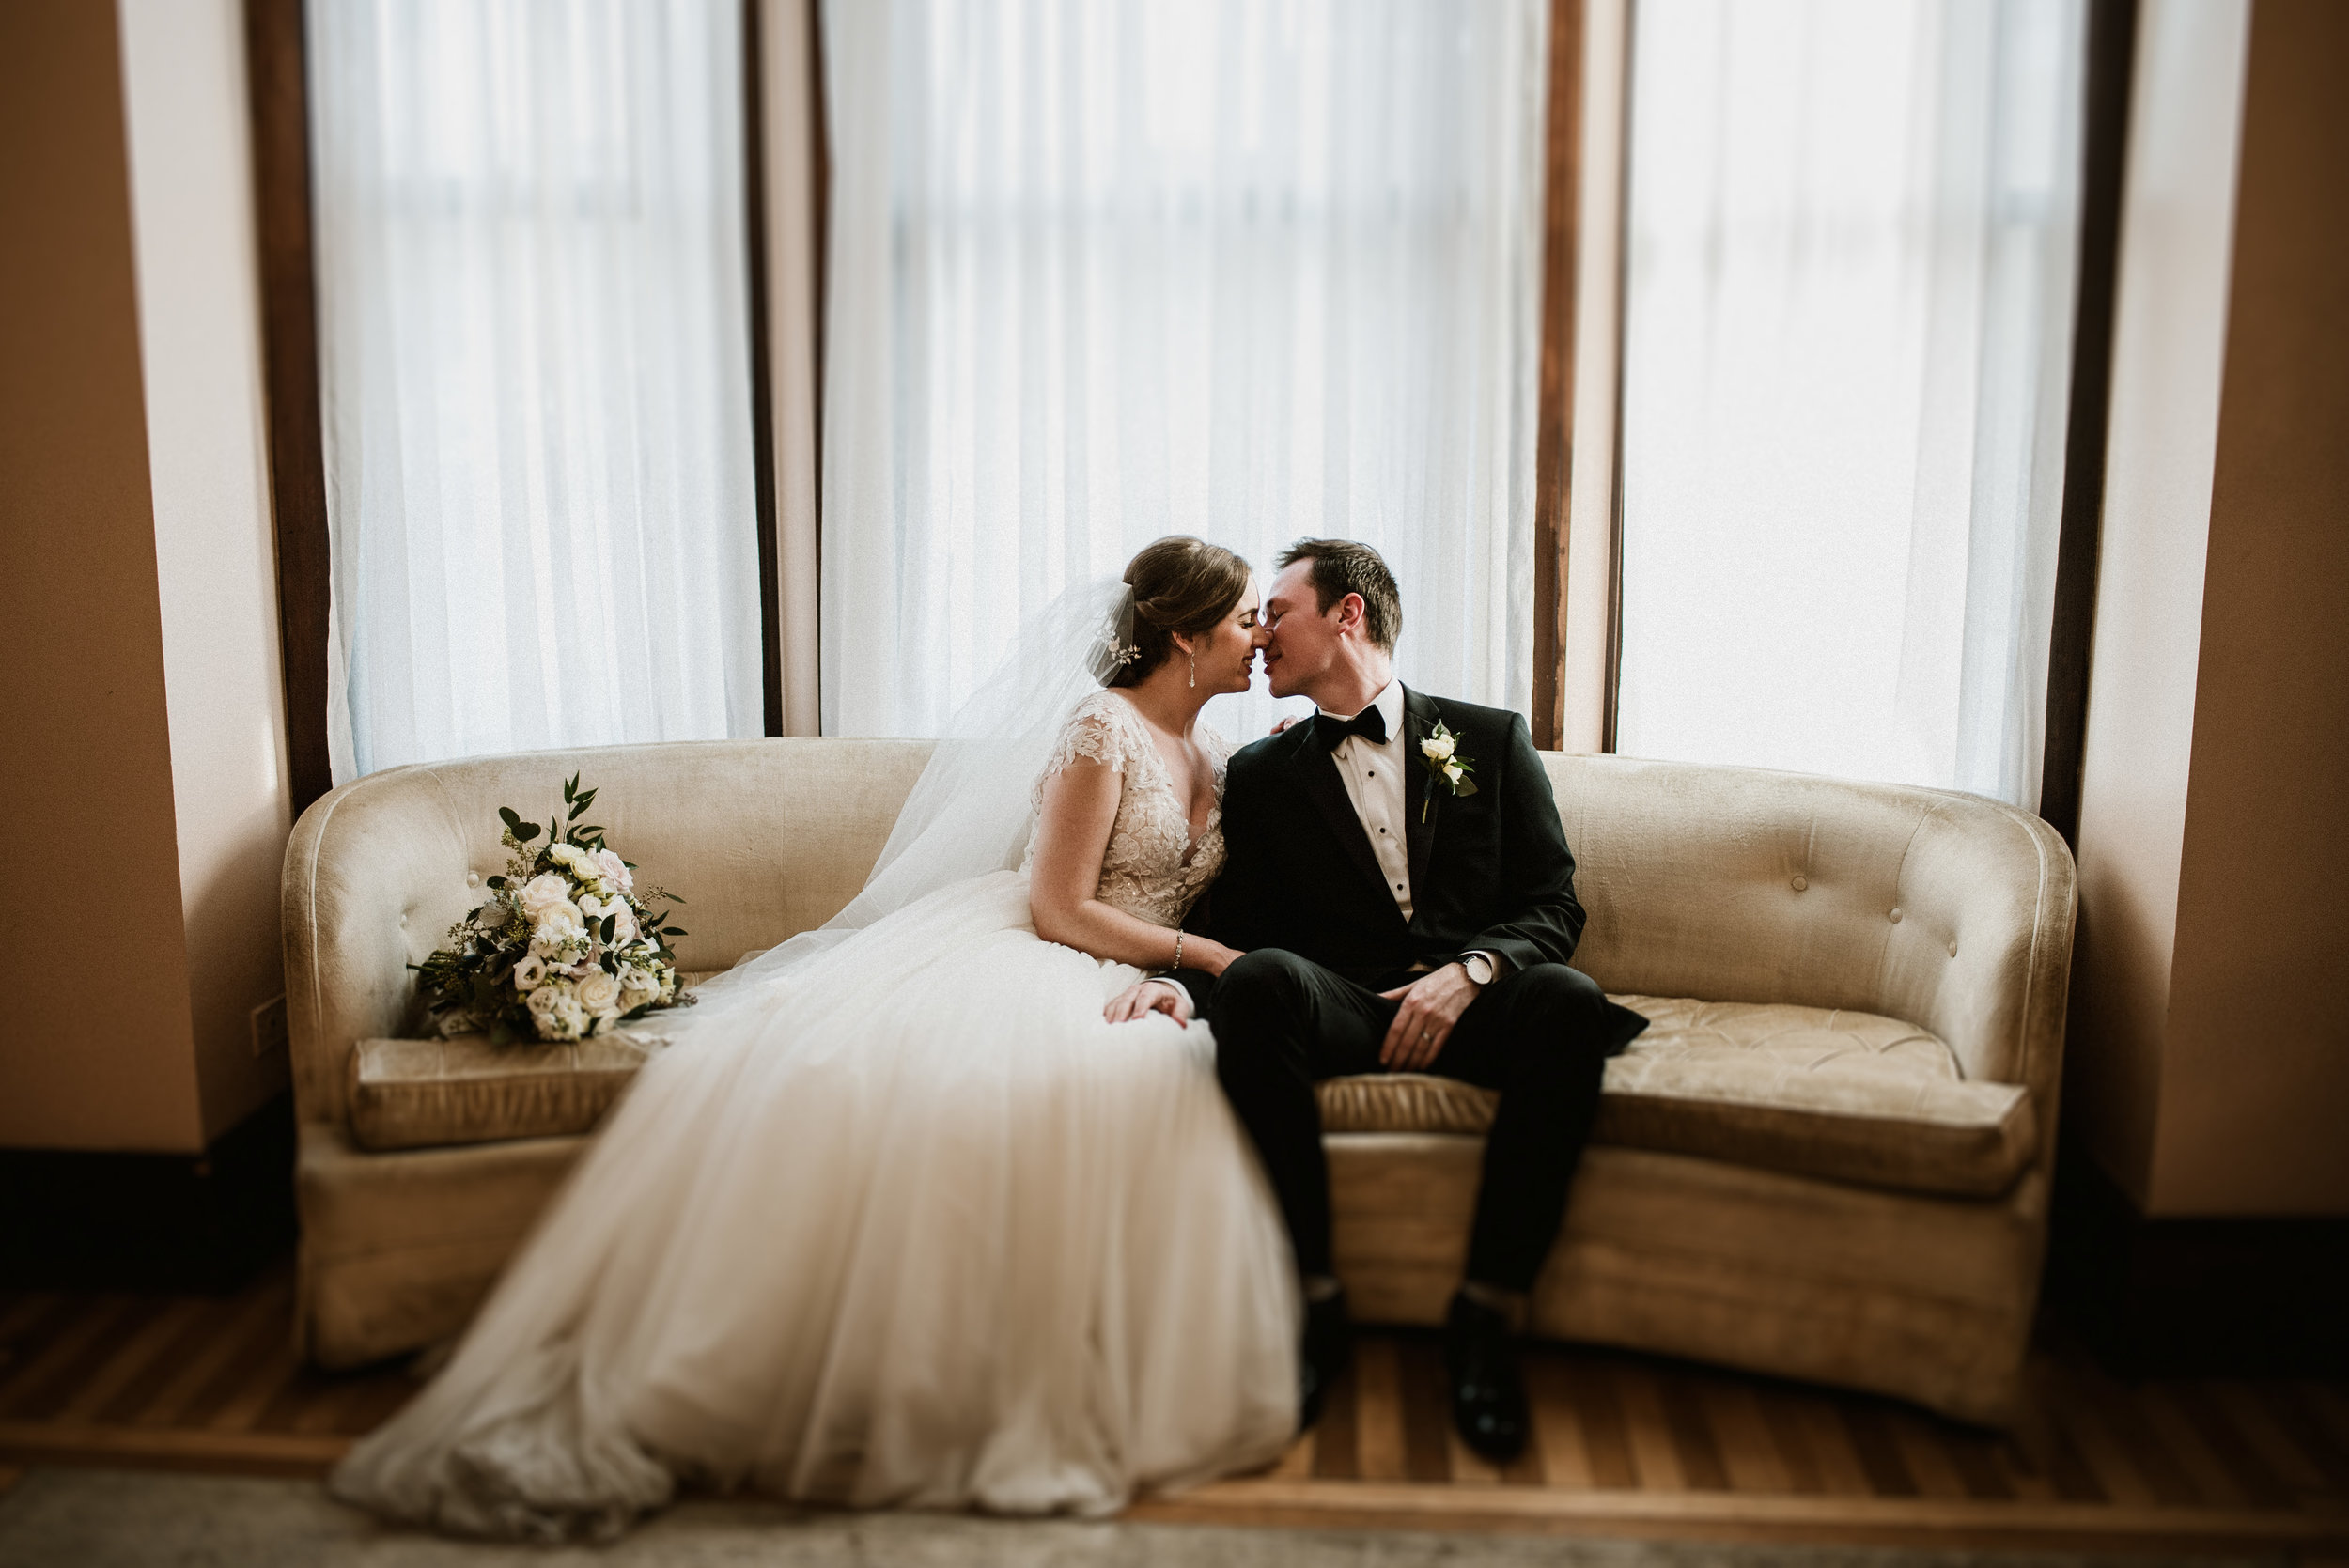 Brittany and Andrew - Elegant Vintage Wedding | The Haight, Elgin IL